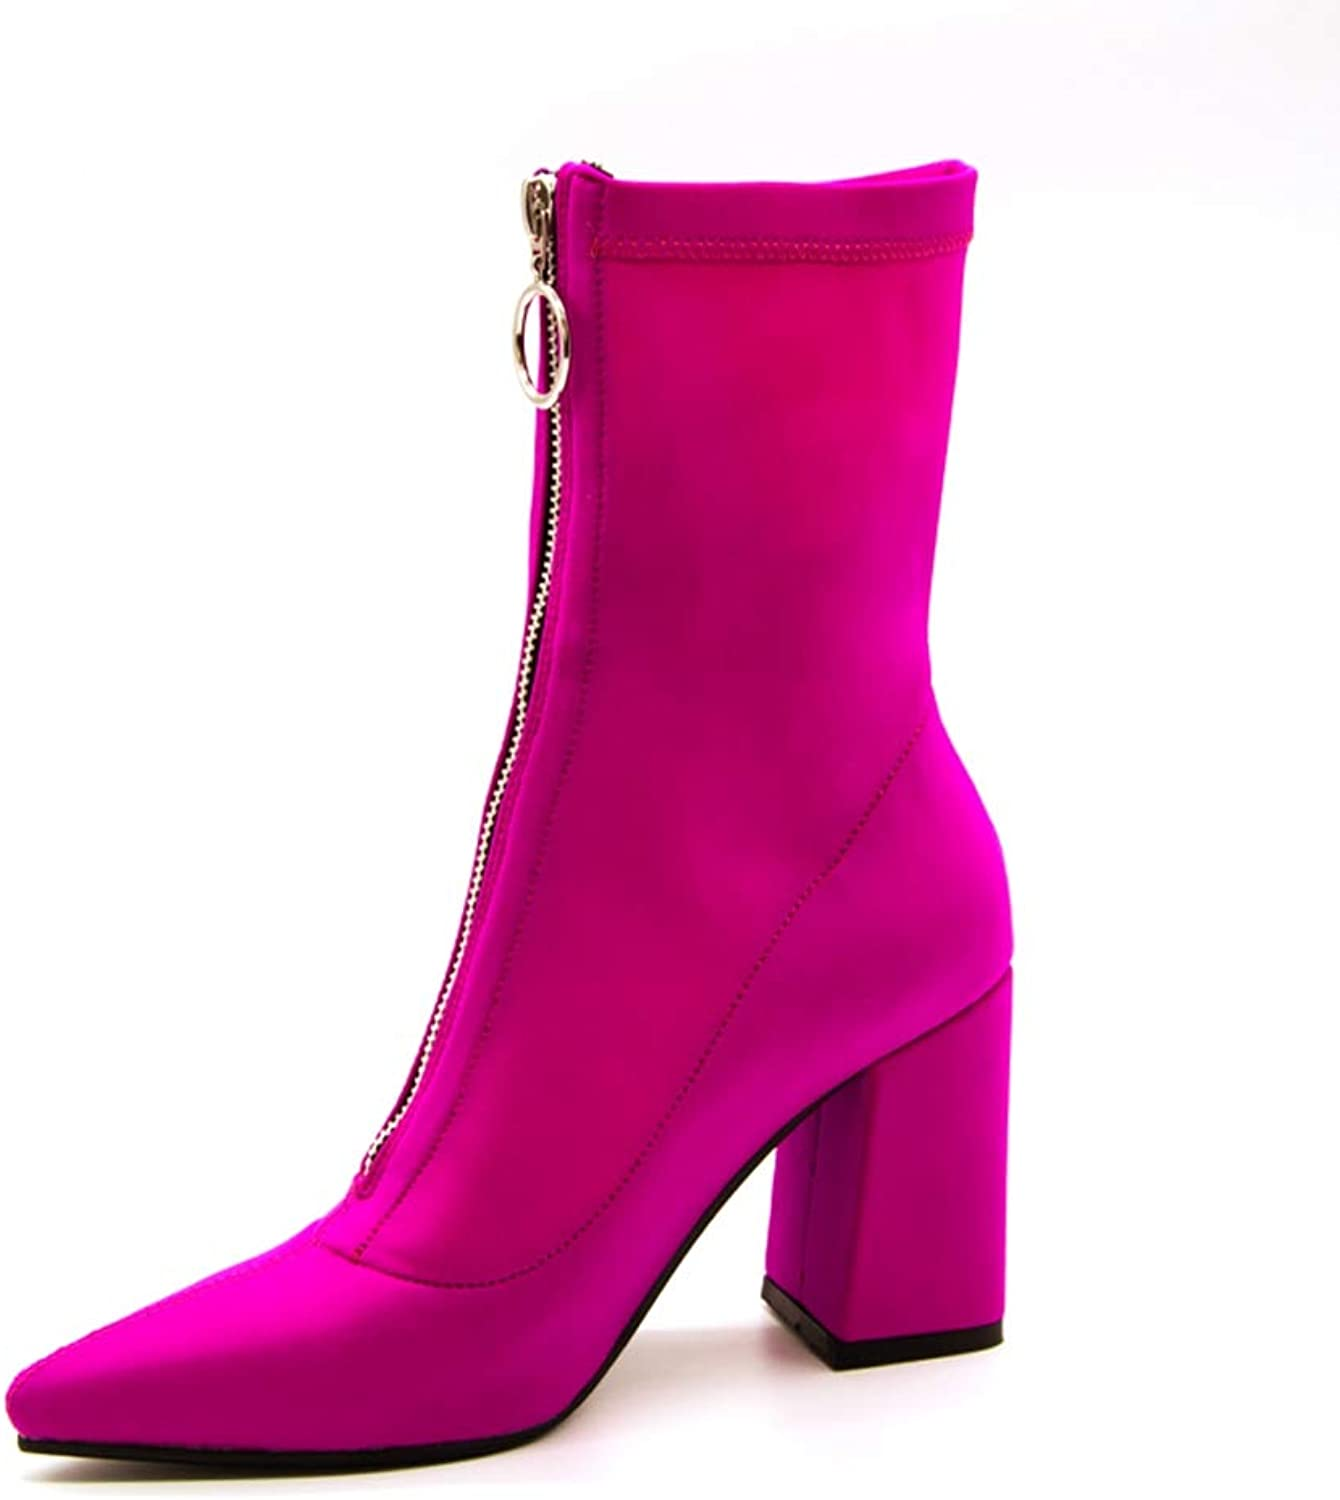 Ladies Stretch Fabric Socks Boots Women Pointed Toe Zip Footwear Fashion Ankle Boots High Heels Mid Calf Female shoes